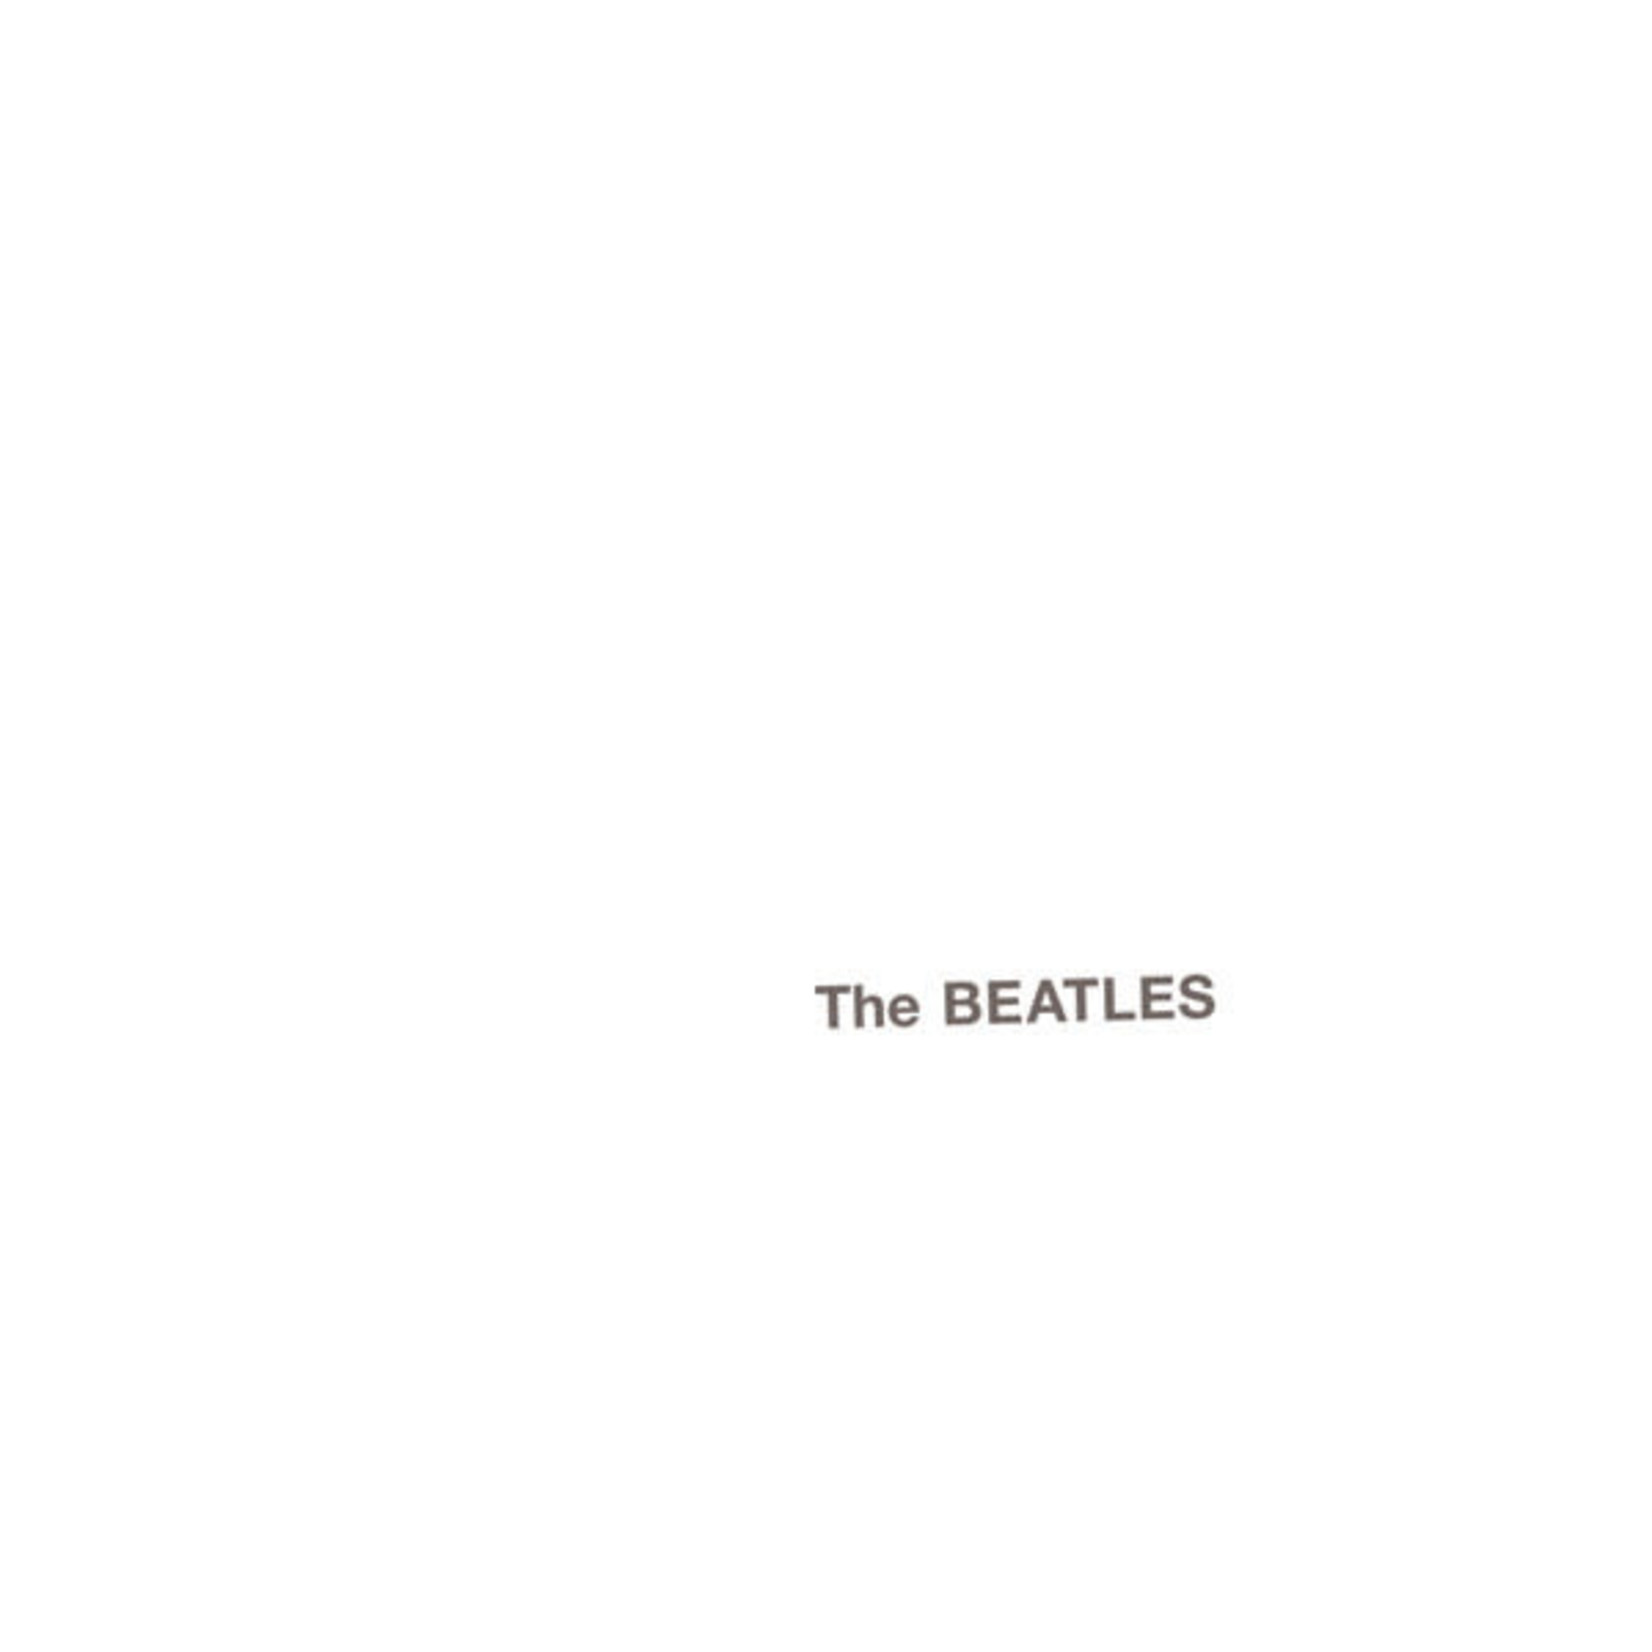 [Vintage] Beatles: self-titled (The White Album) (Capitol reissue, complete)